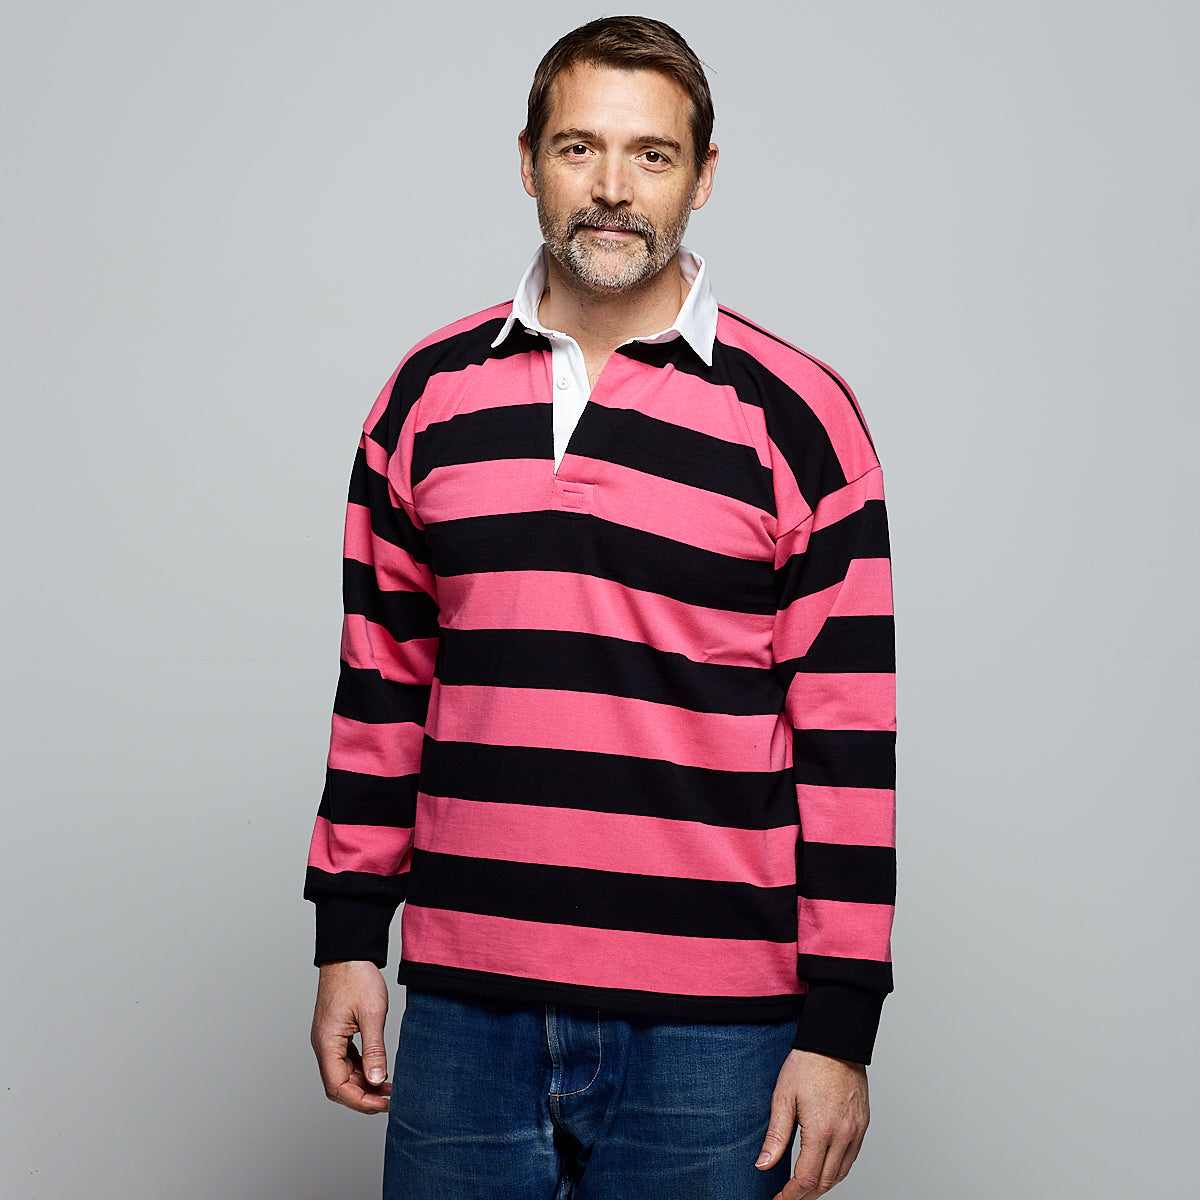 Men's Rugby Shirt Black Pink Stripe - Community Clothing